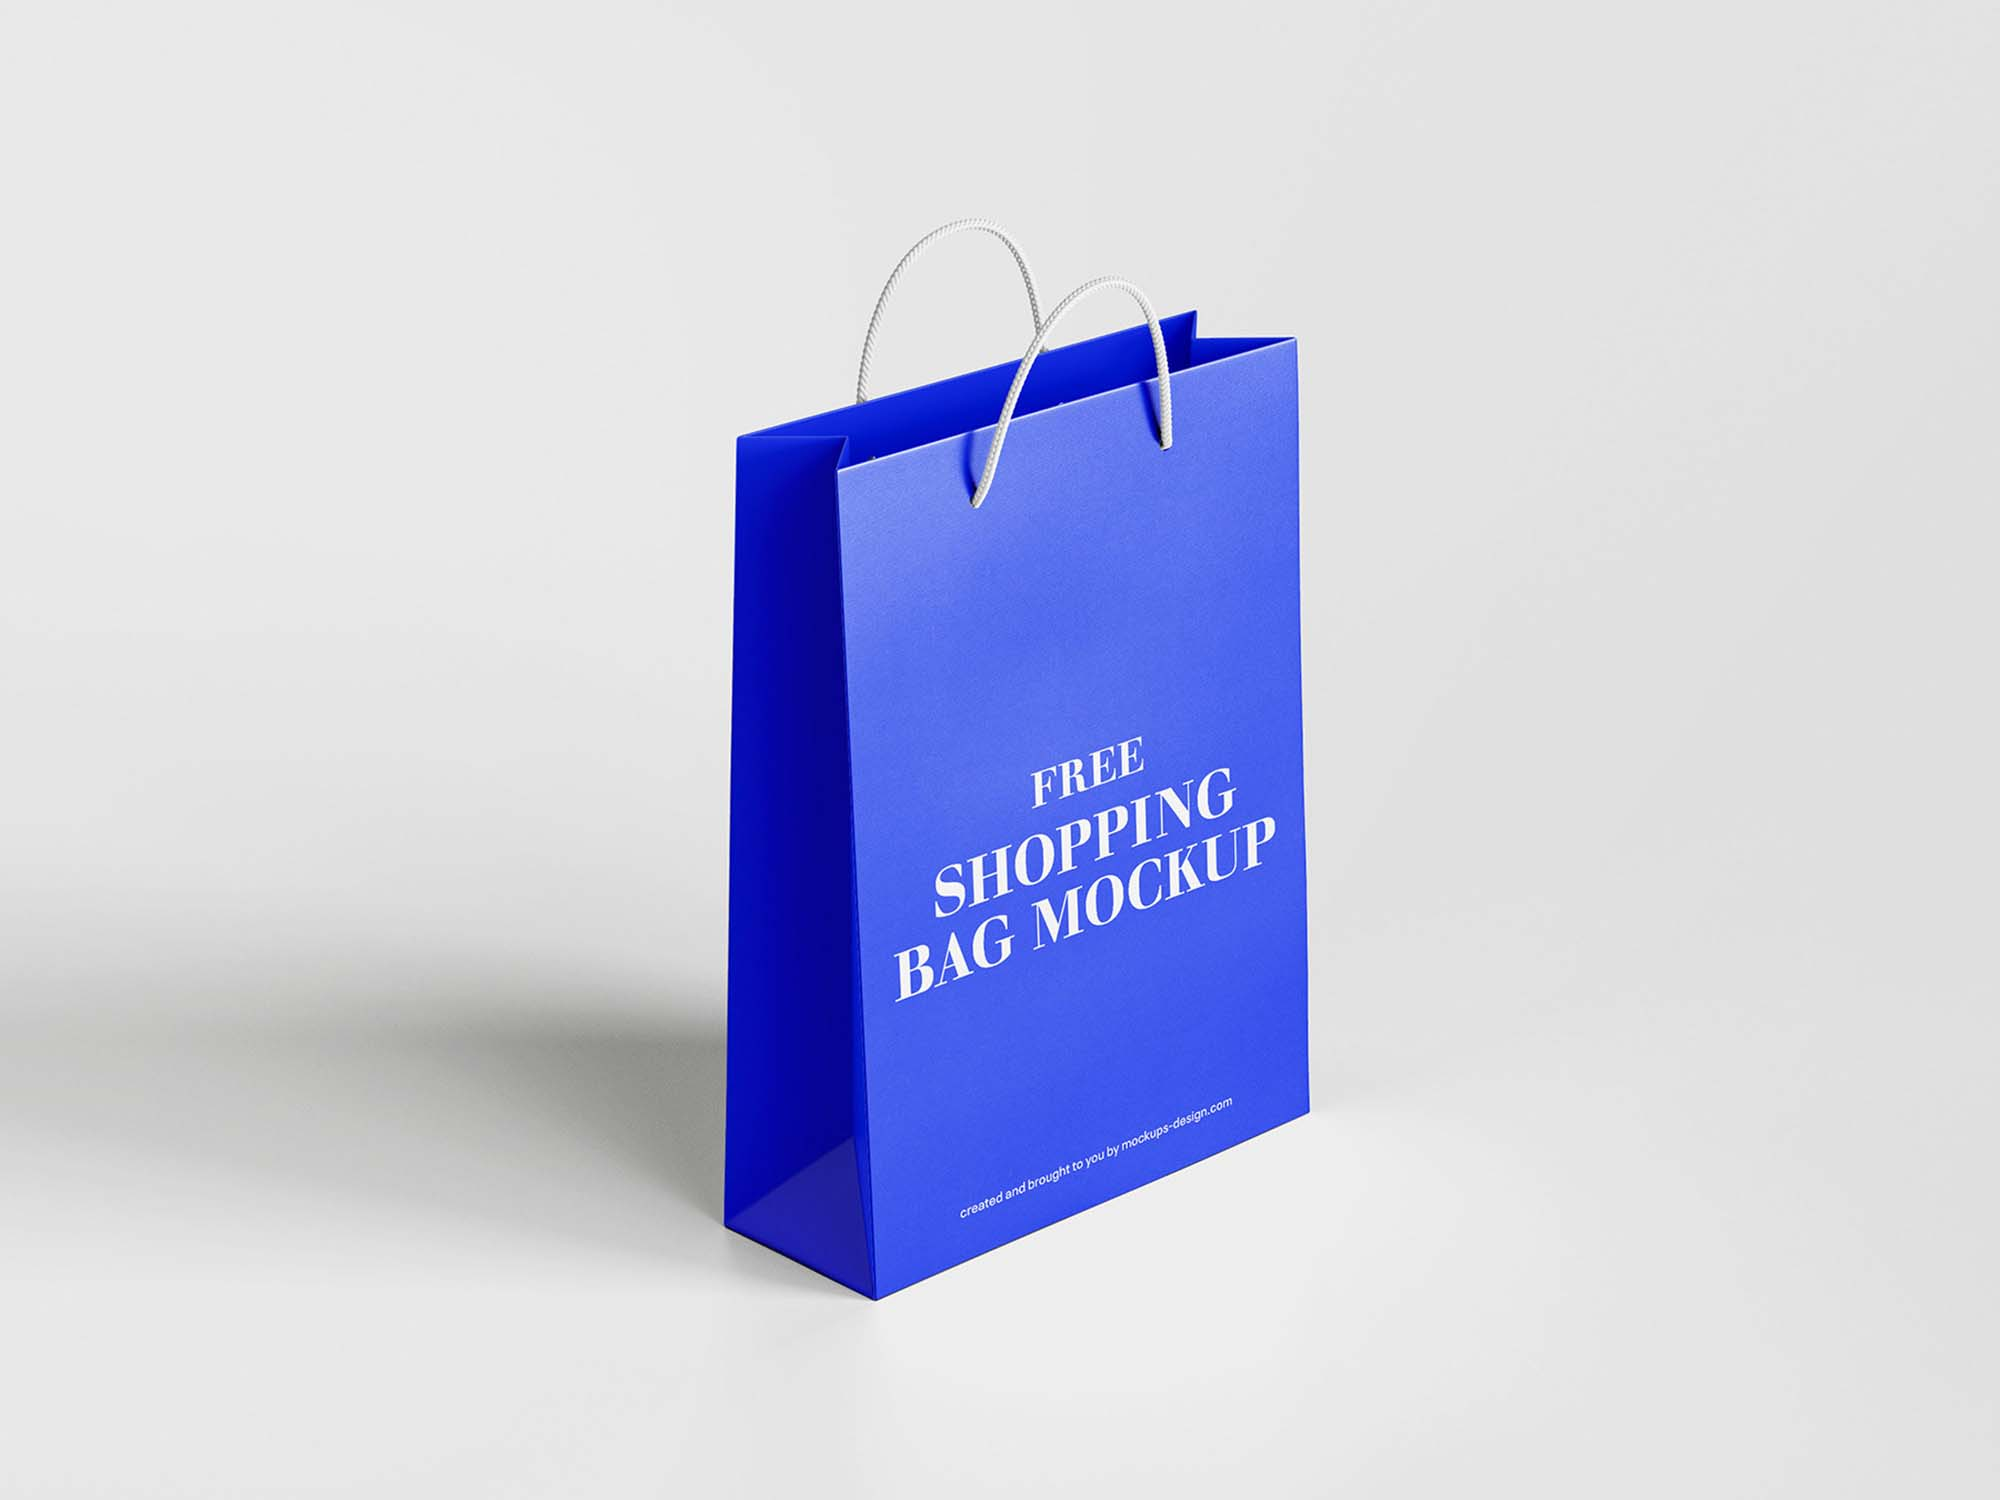 Shopping Bag Mockup 3